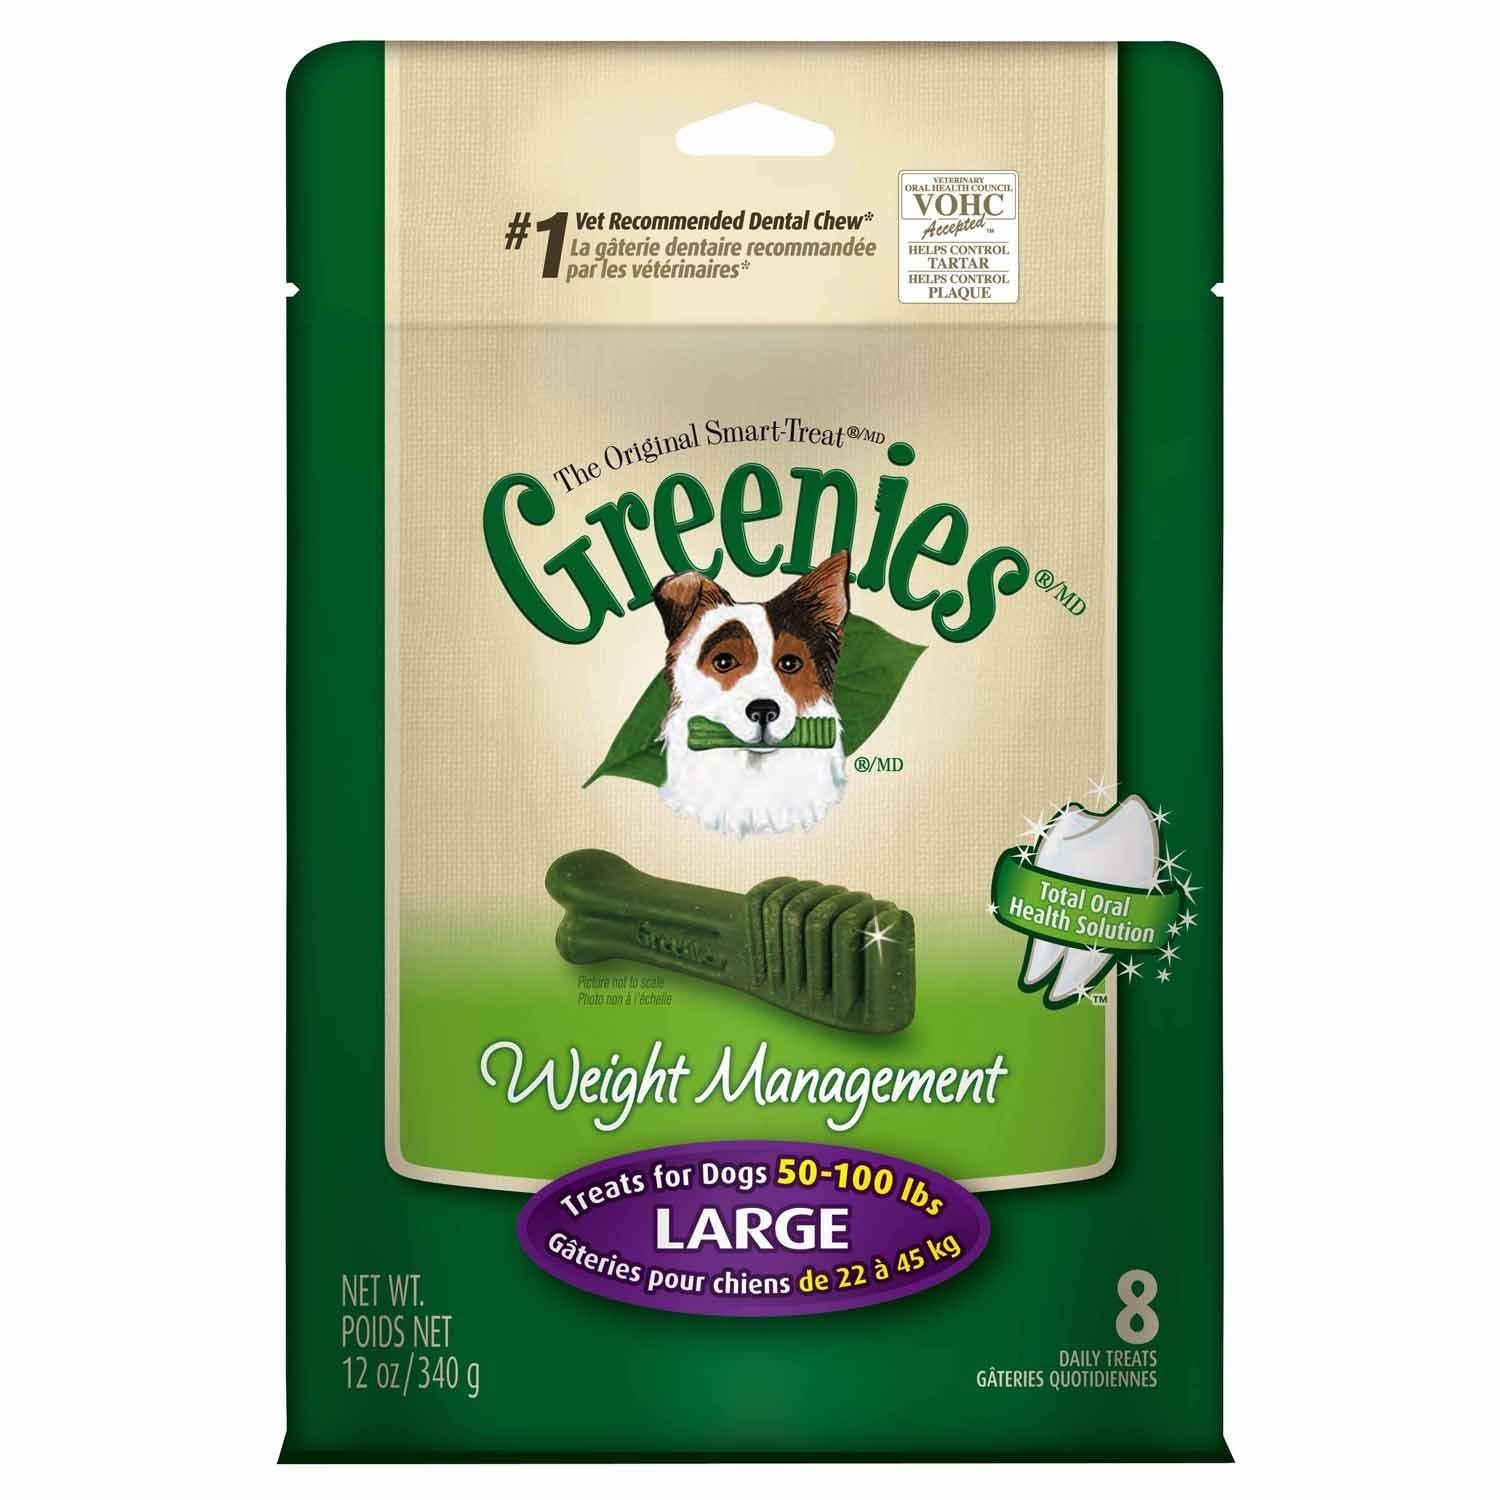 GREENIES Weight Management TreatPakLarge Dog 12 Oz, Pack